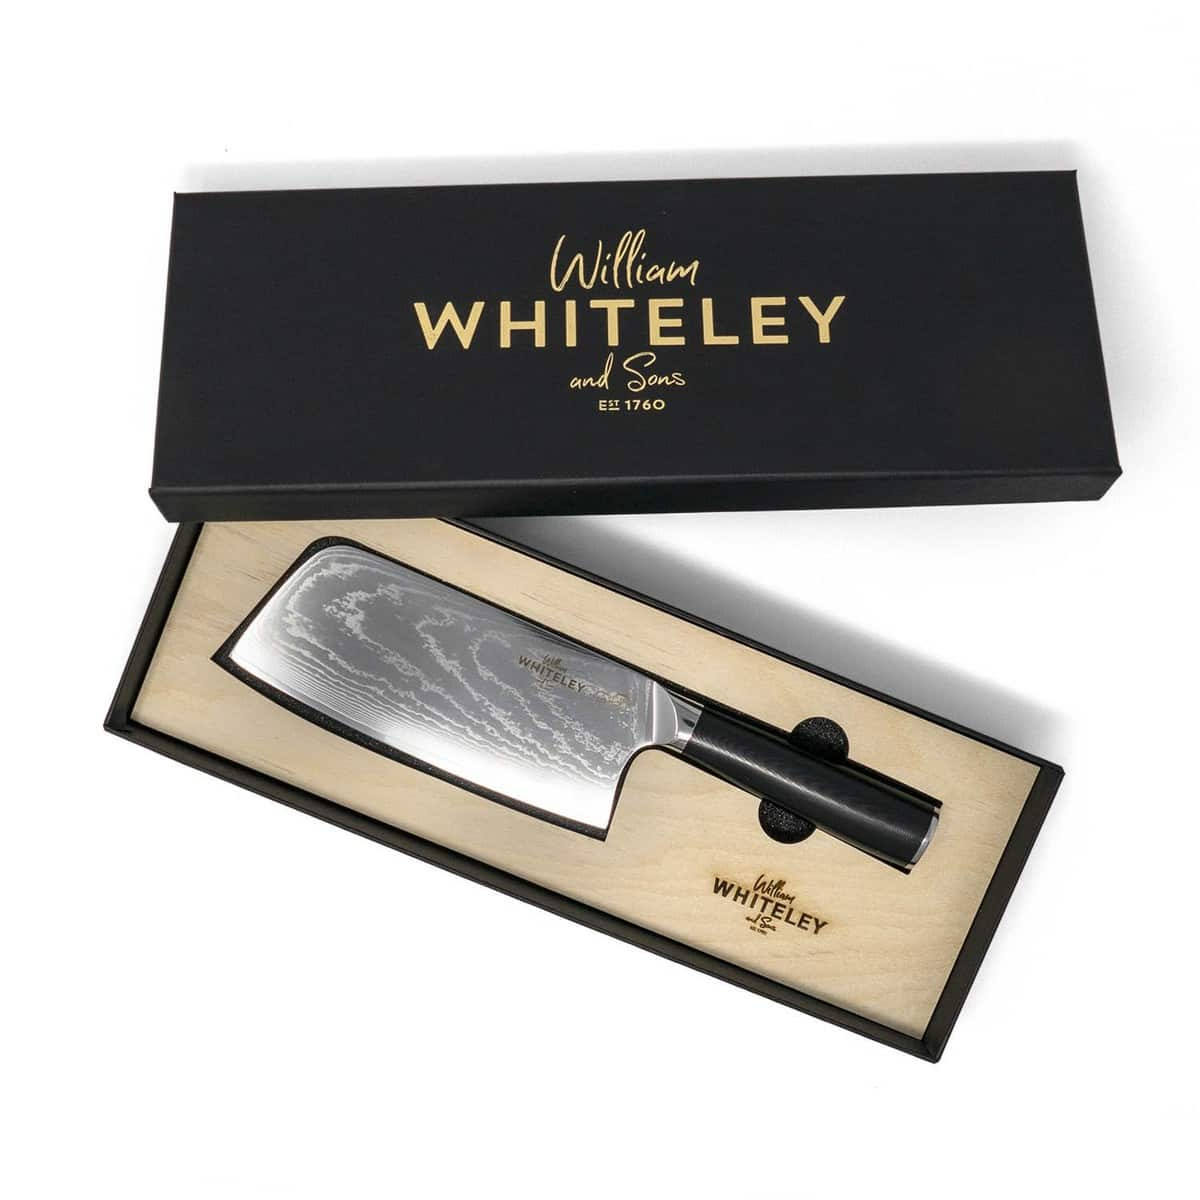 Buy The Damascus Cleaver Knife from William Whiteley